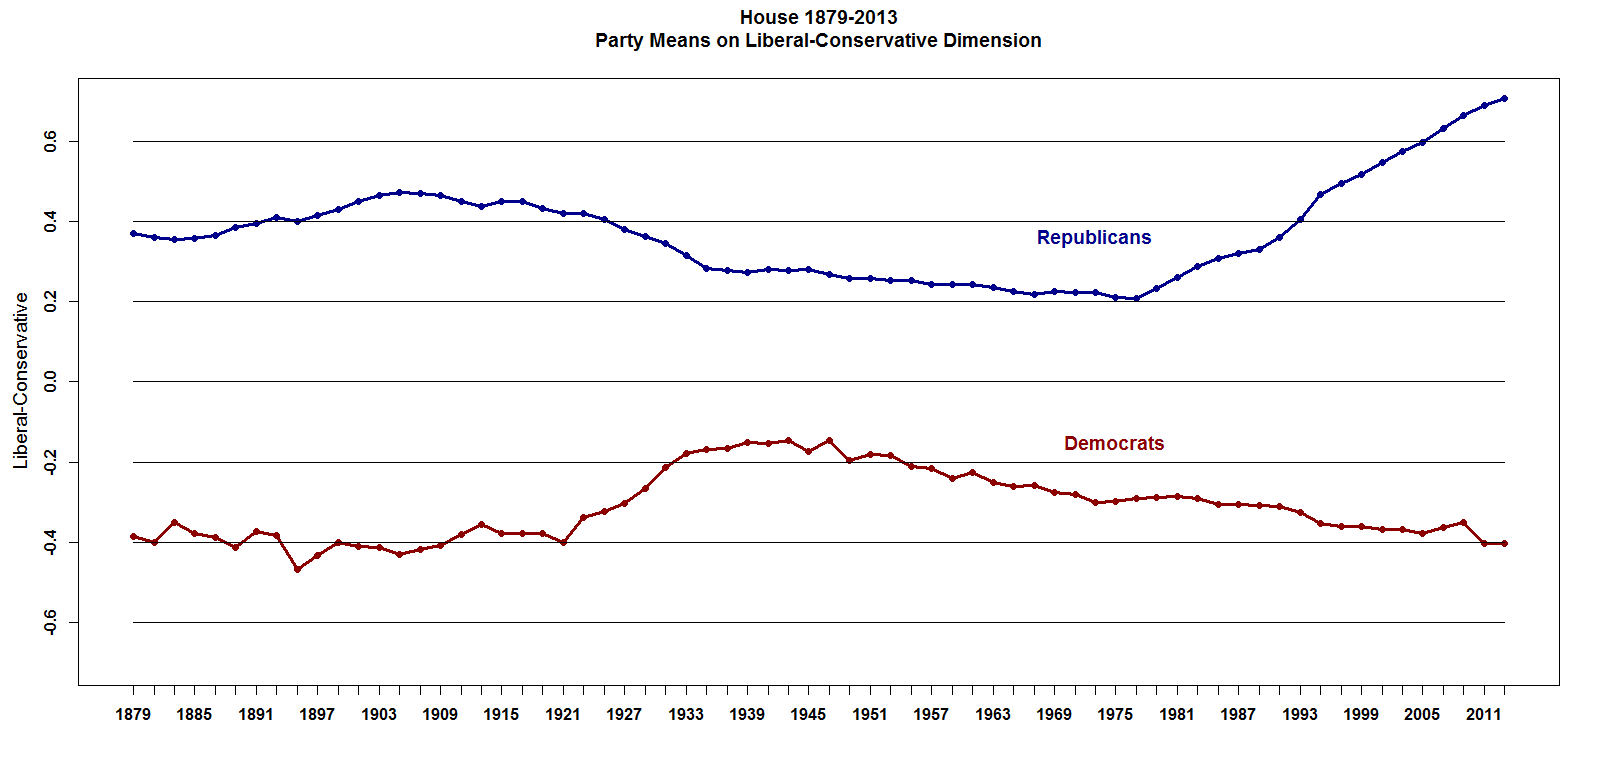 I love this chart, but why is the R line blue and the Dem line red?